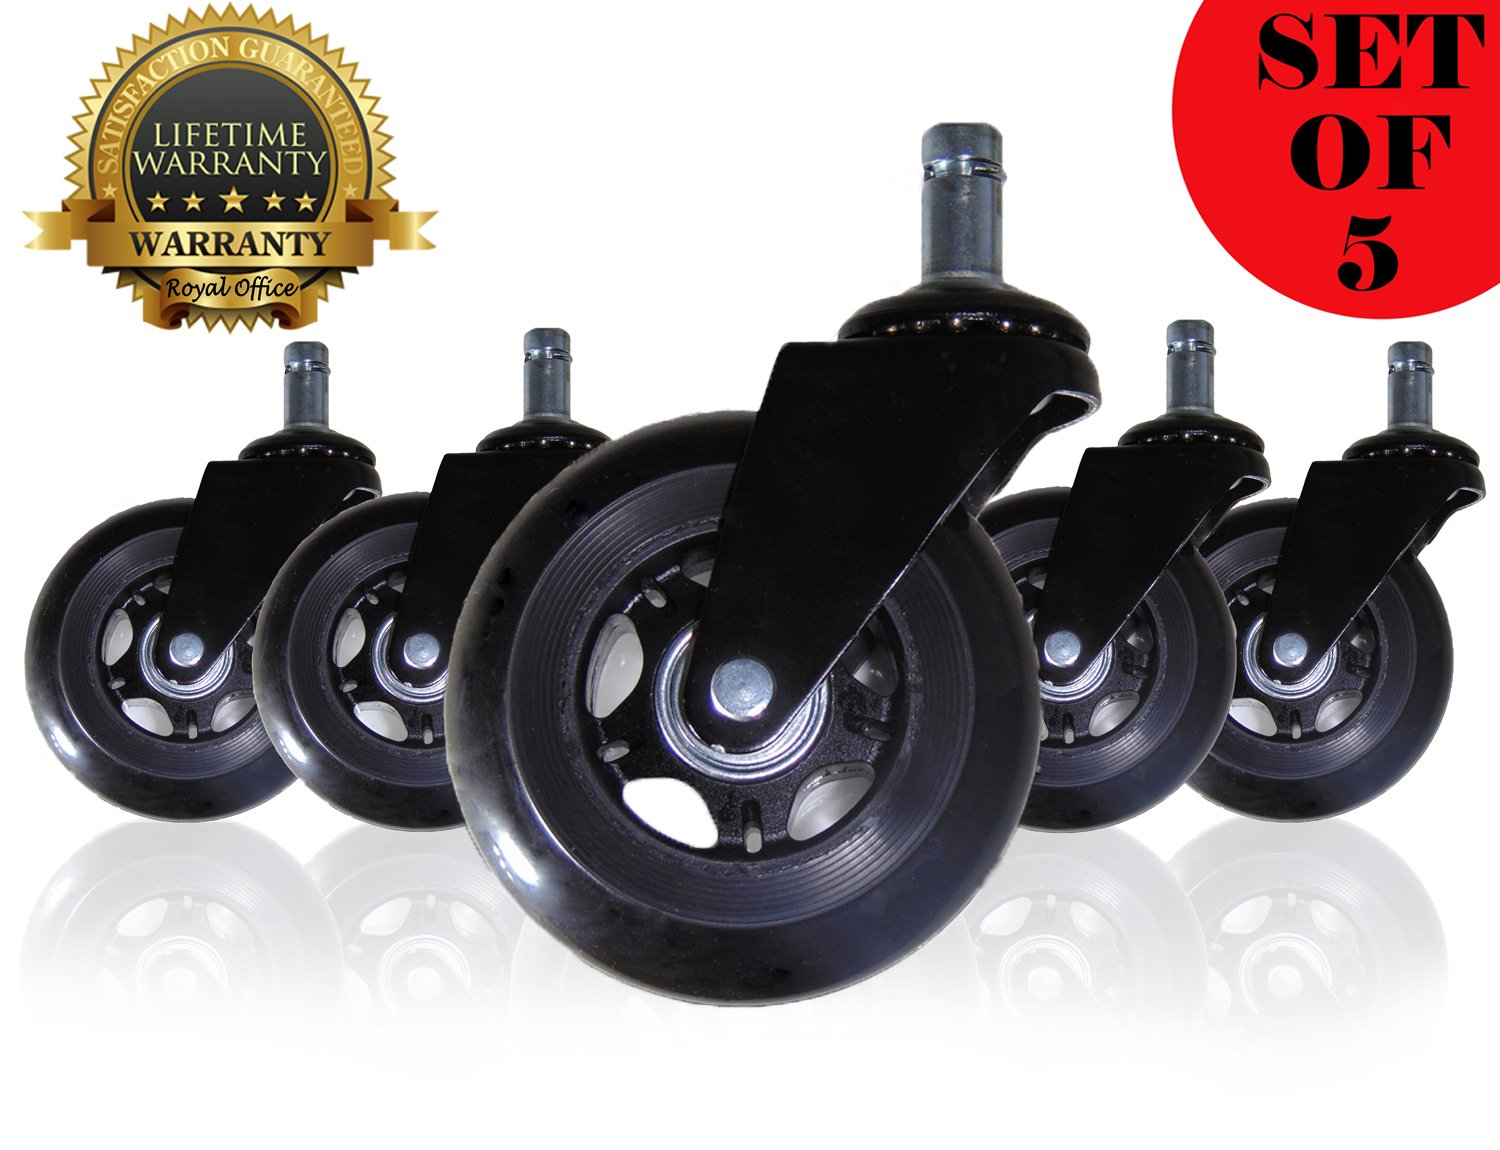 Office Chair Caster Wheels - Rollerblade Style - Set of 5 Polyurethane wheels | SAFE for Hardwood Floors & Provide SMOOTH, EFFORTLESS GLIDE | Tool Free Install | 4 COLORS available